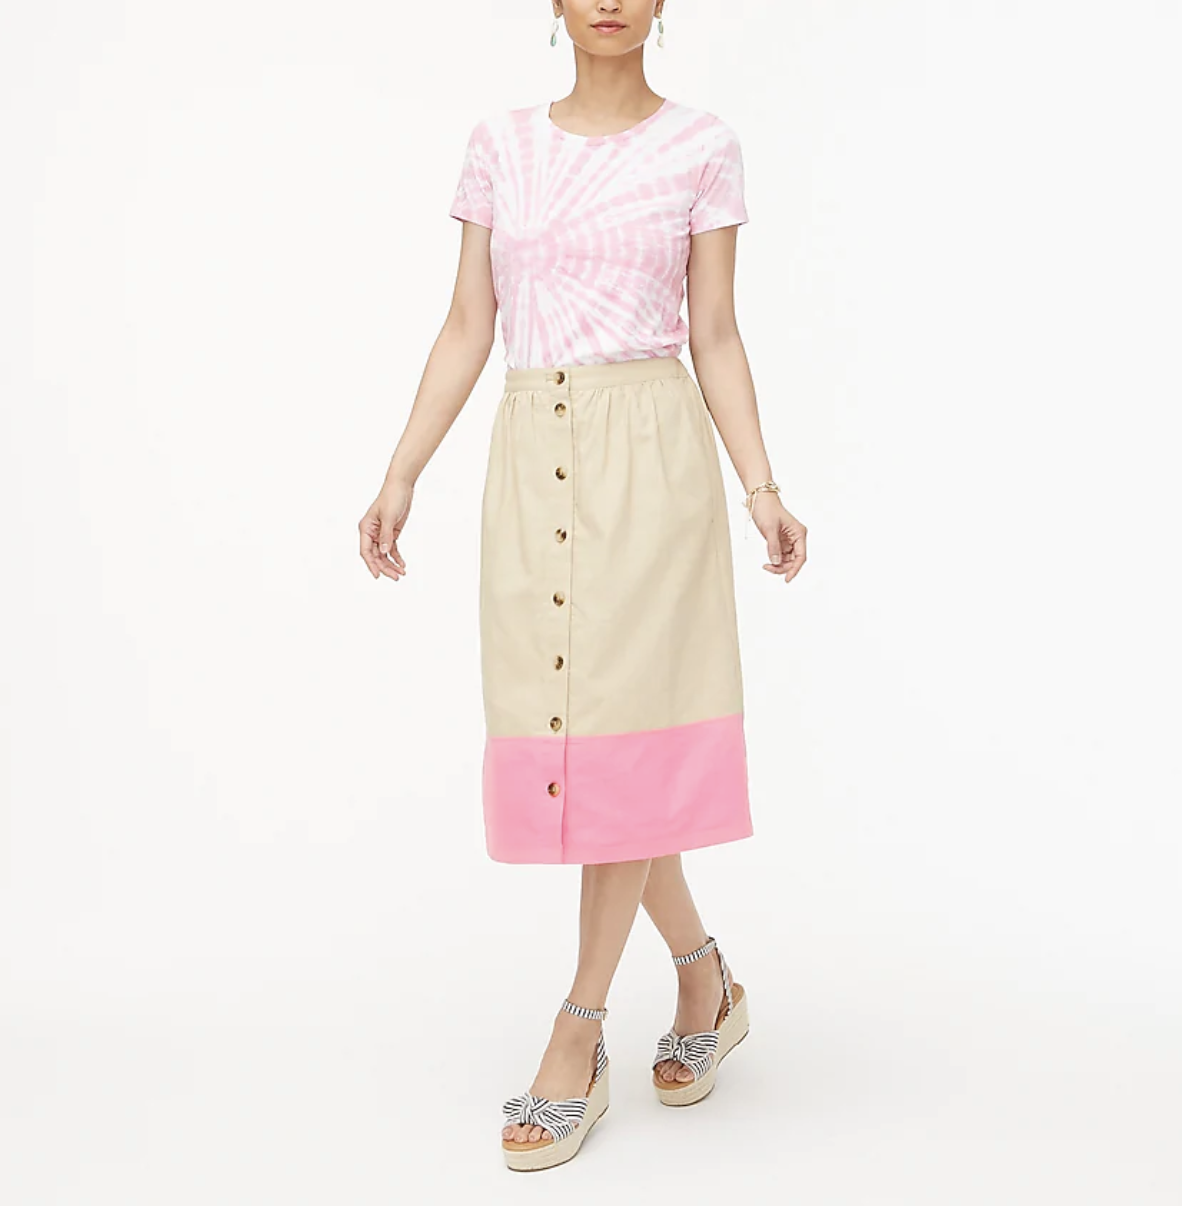 A model wears a white and pink colorblock midi skirt with wedges